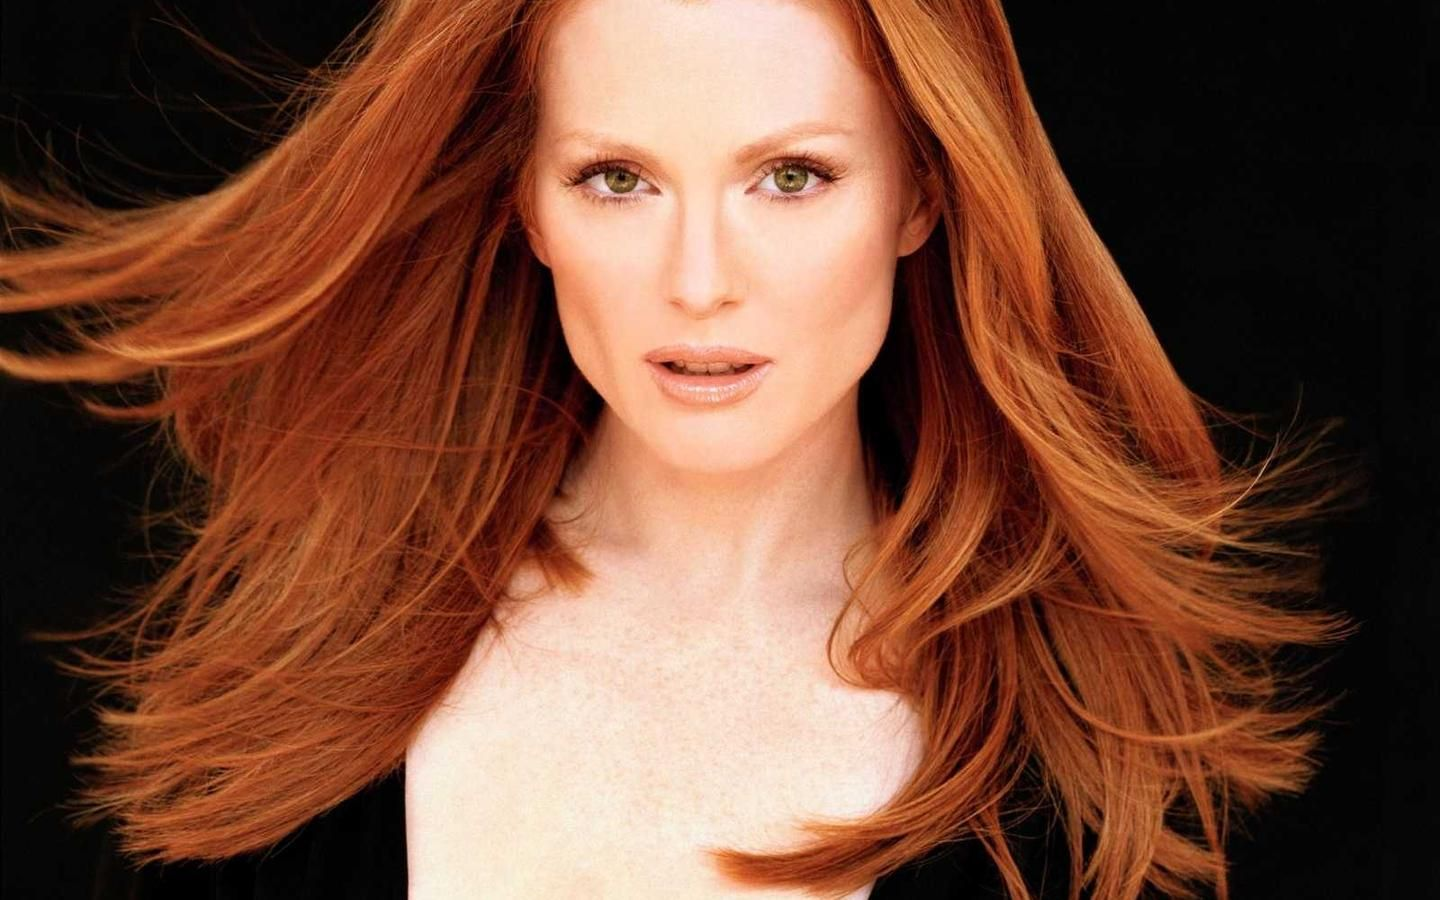 julianne-moore-wallpaper-4